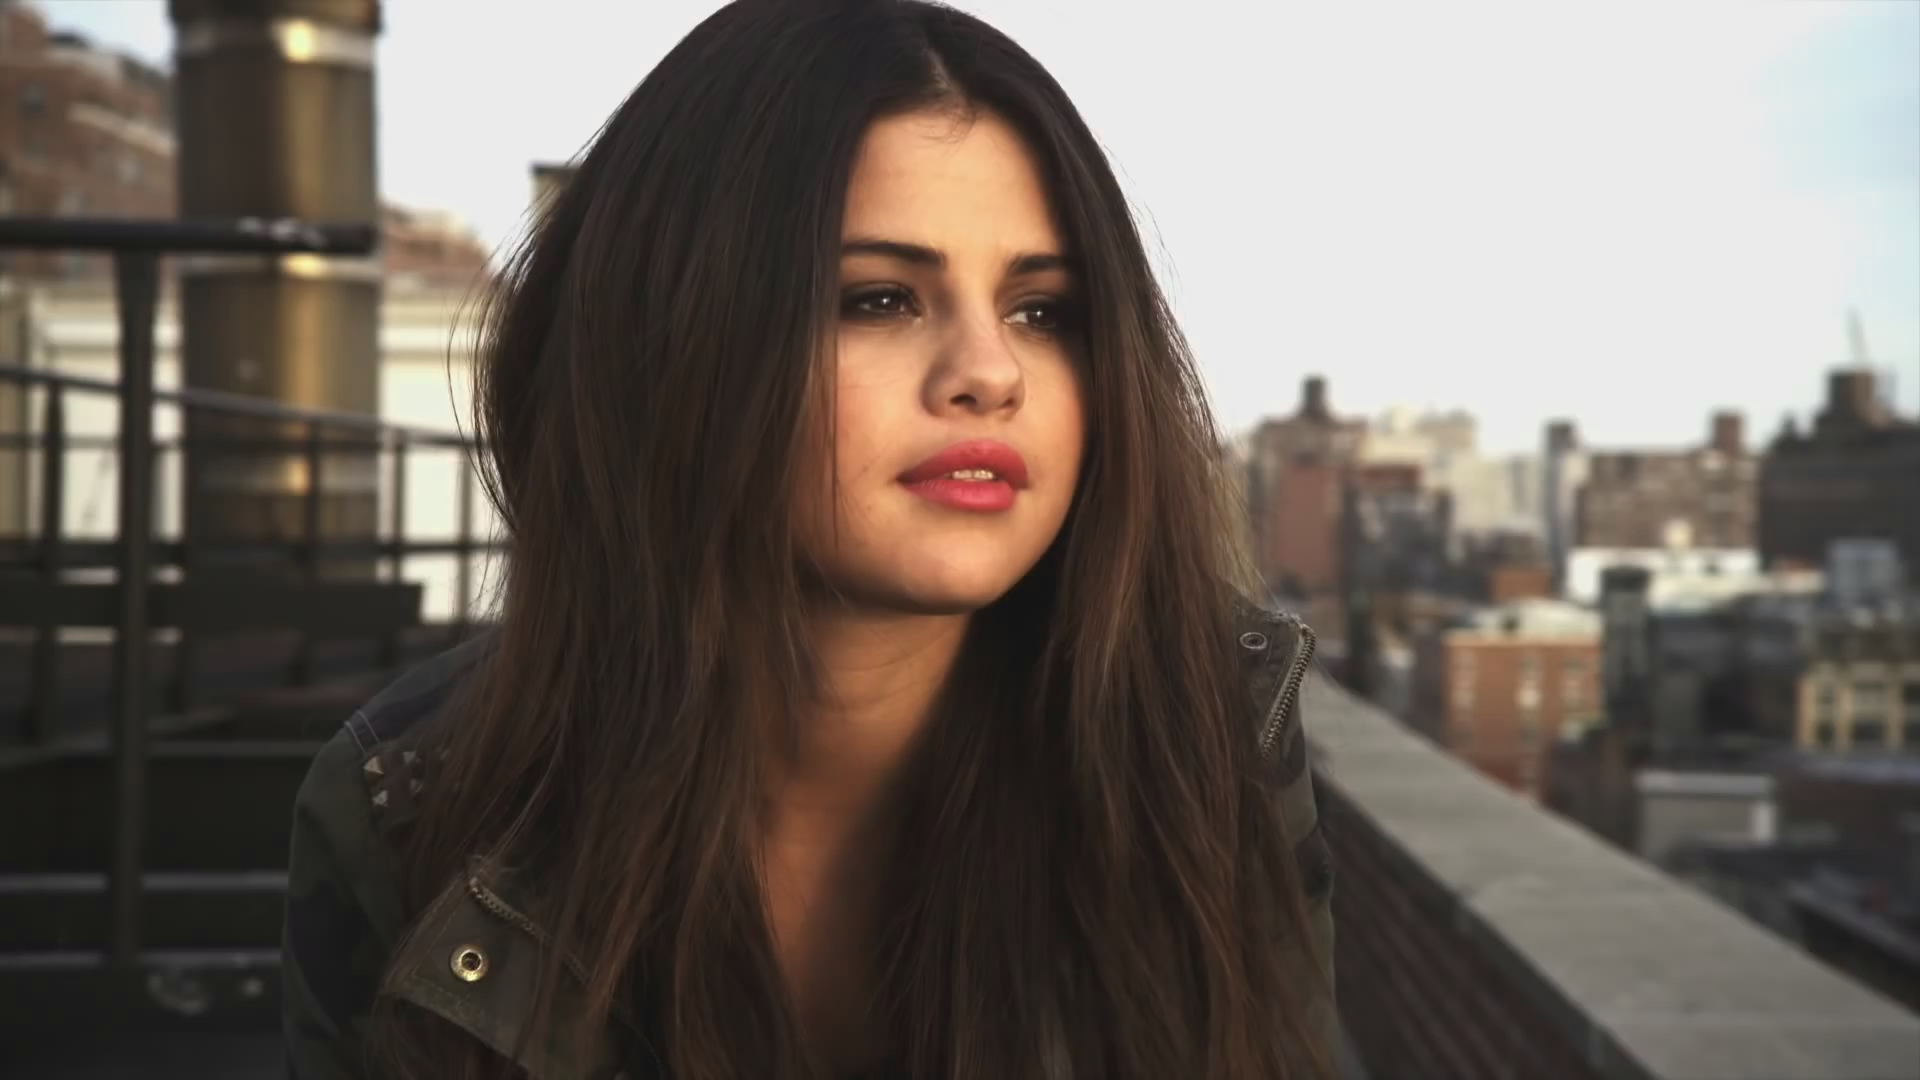 Selena Gomez Wallpapers And Backgrounds